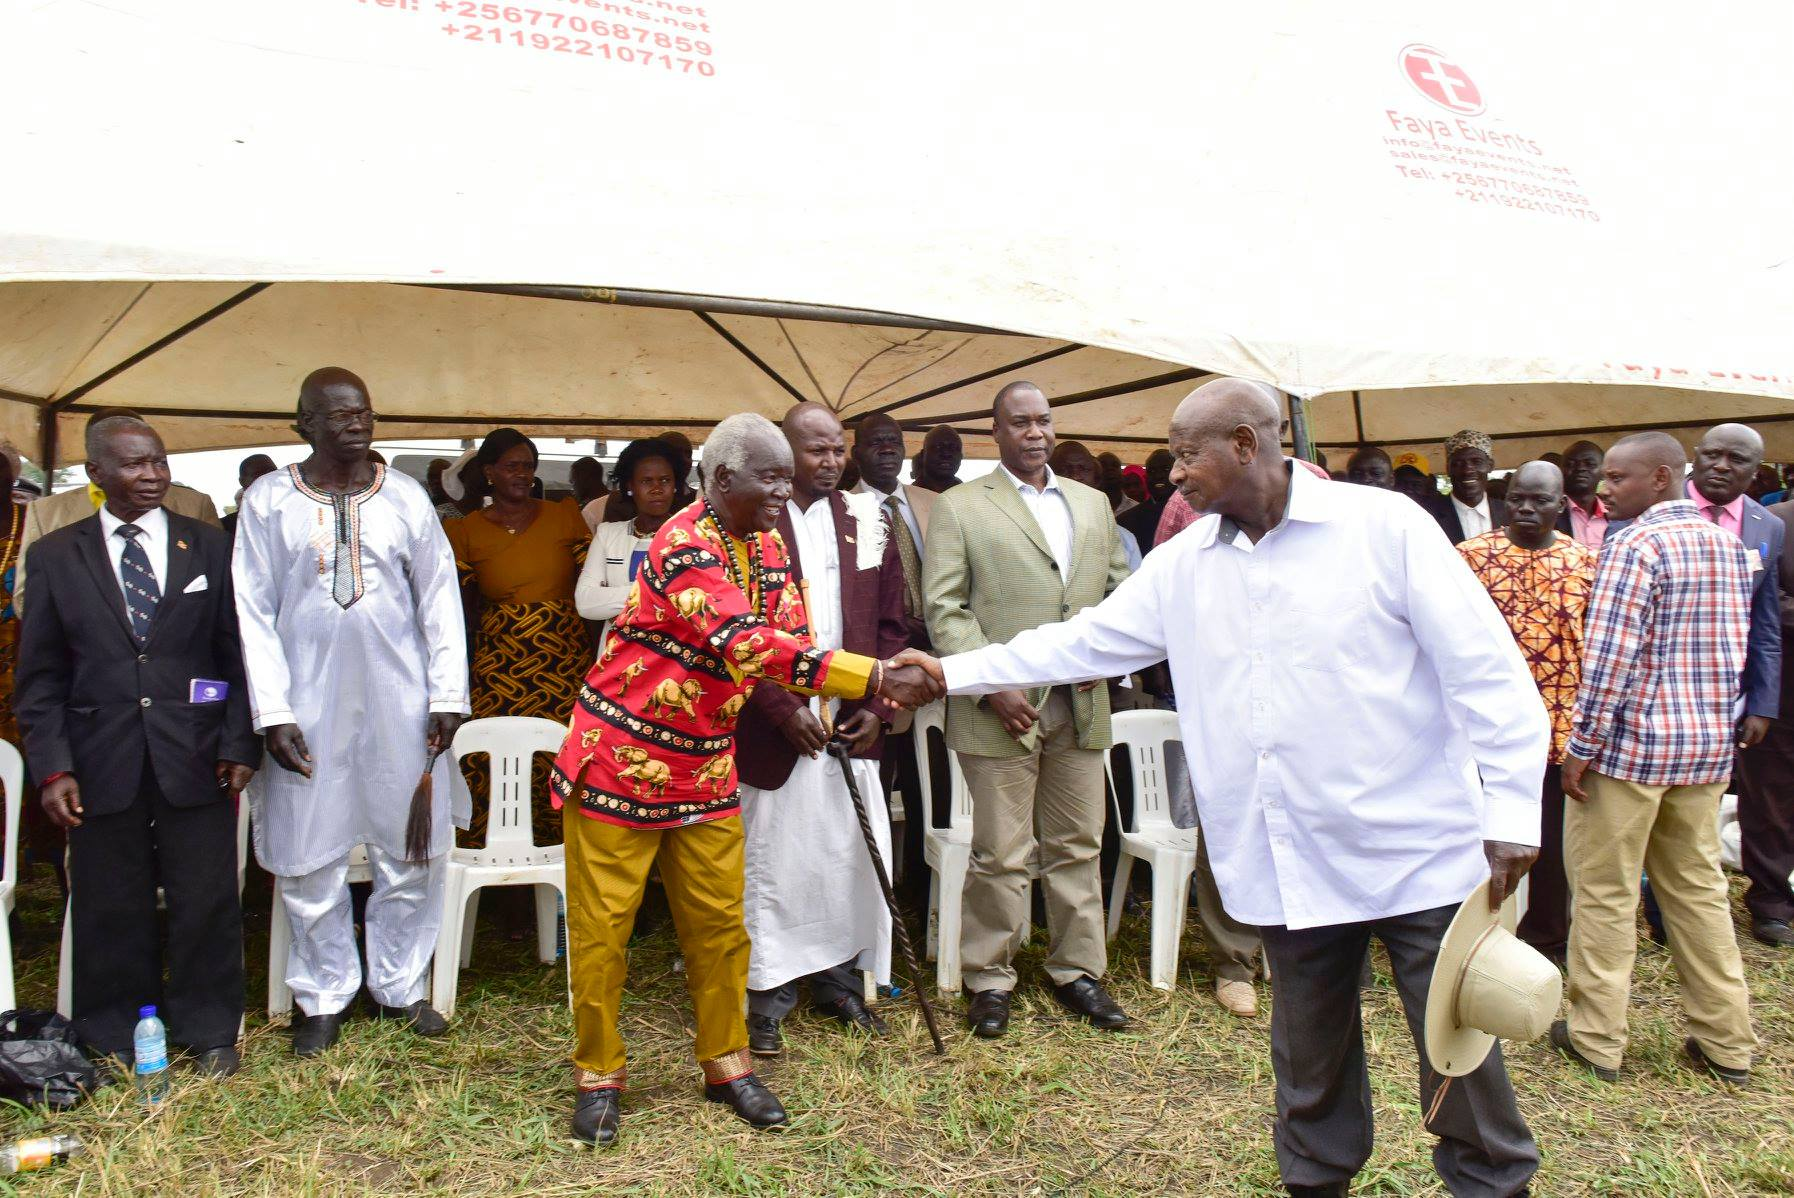 President Museveni greets the Acholi and Langi leaders in an engagement on Apaa land matters (PPU Photo)